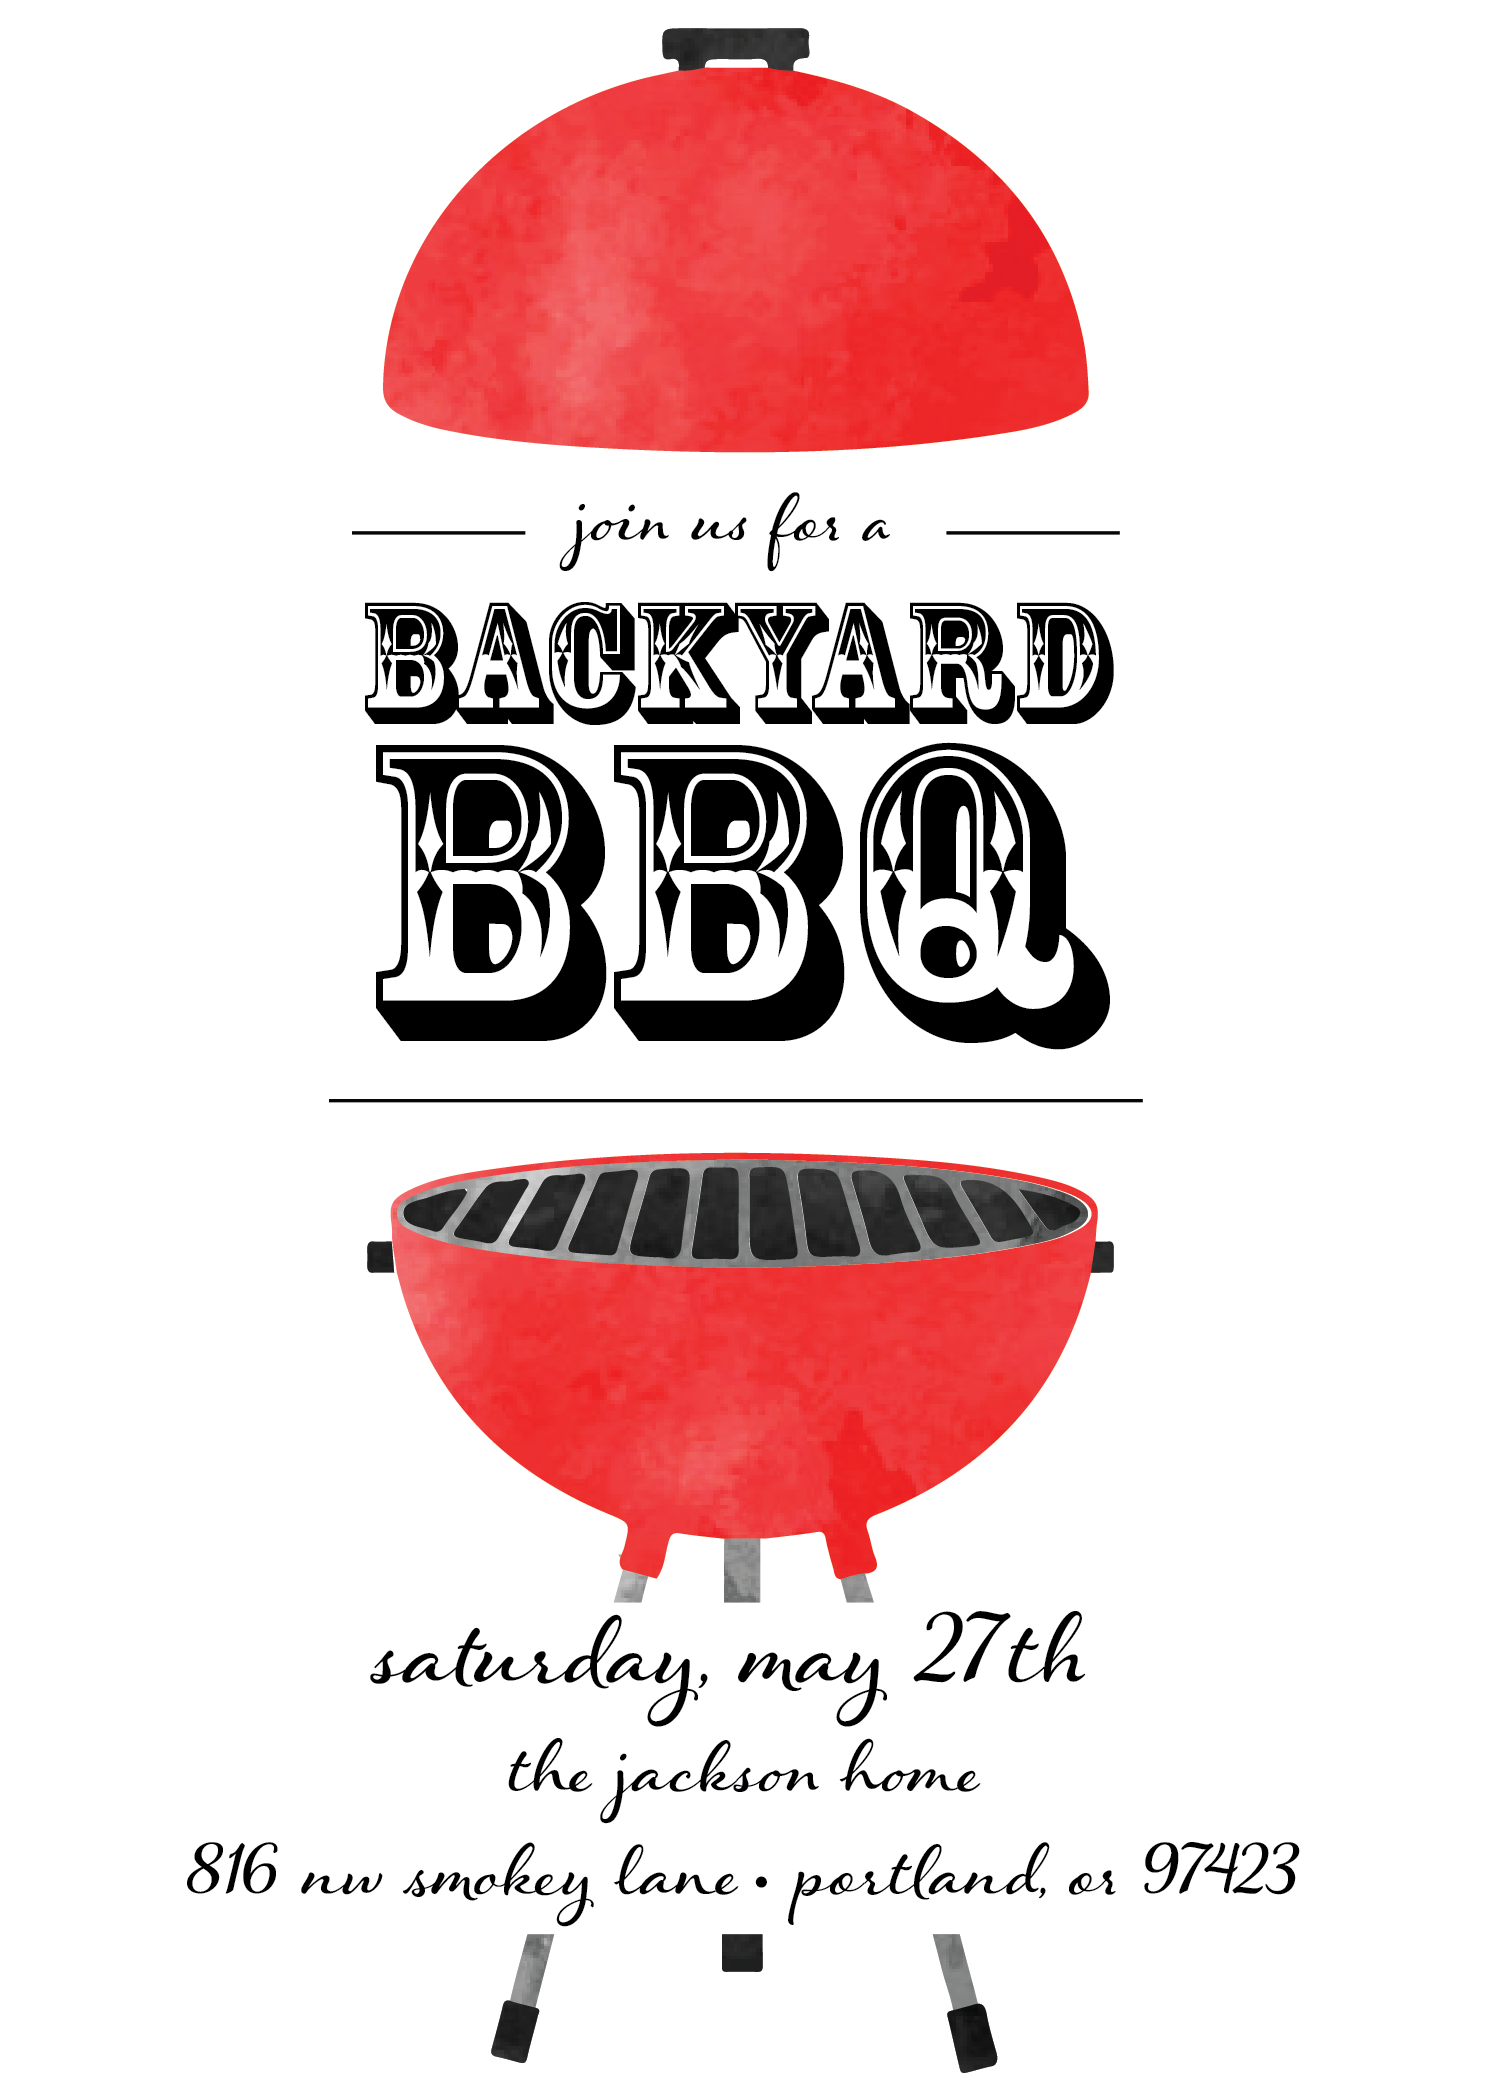 Weekend BBQ Party / Memorial Day / Barbecue Invitation / Backyard ...